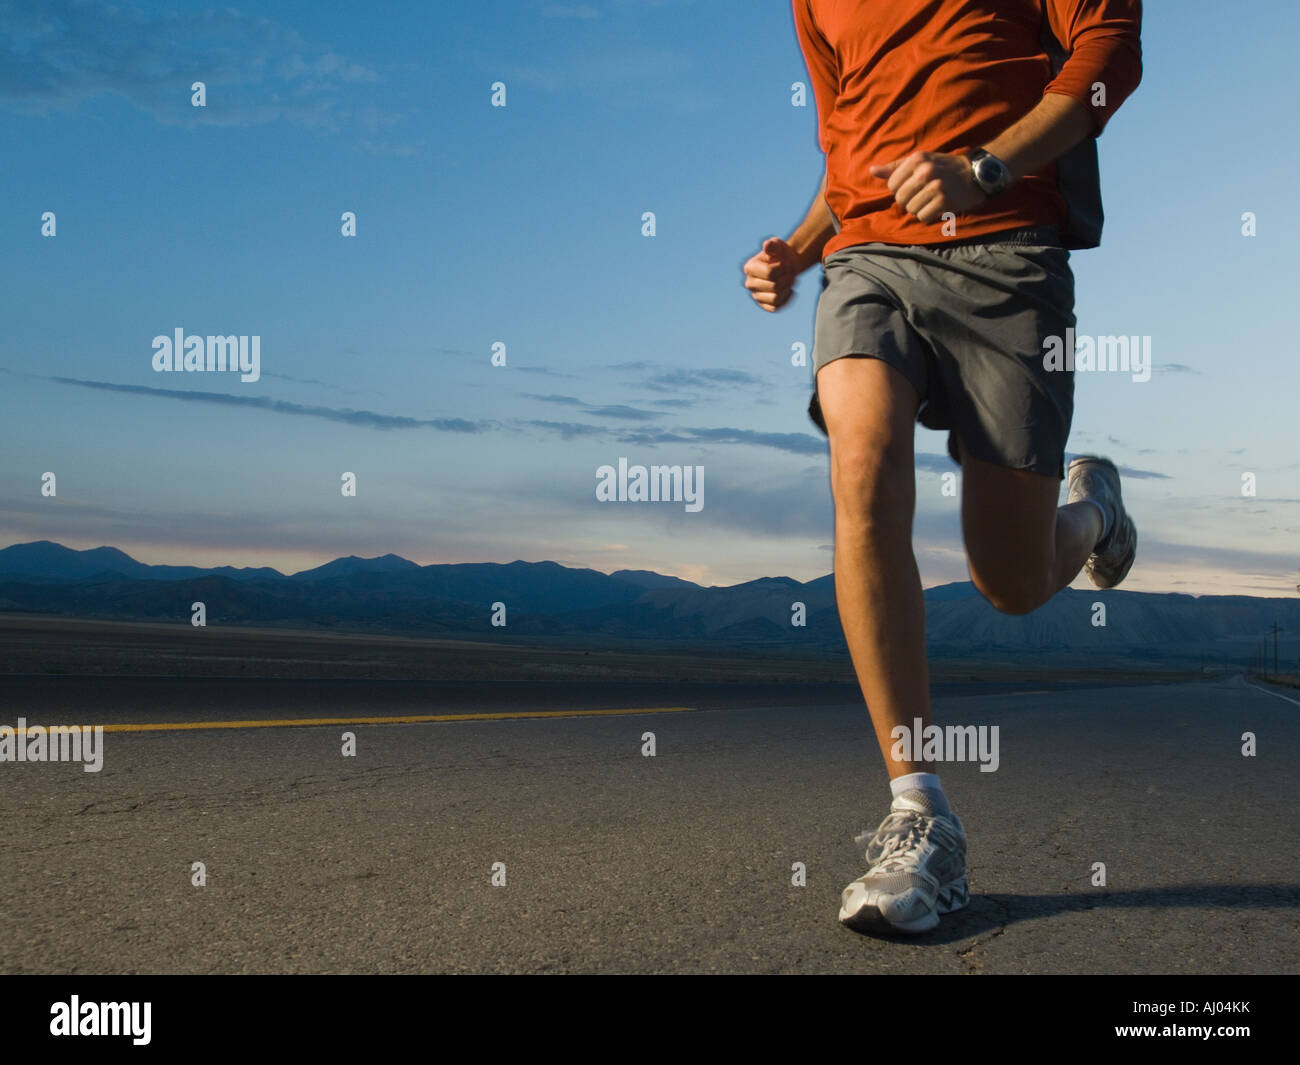 Man in athletic gear running - Stock Image